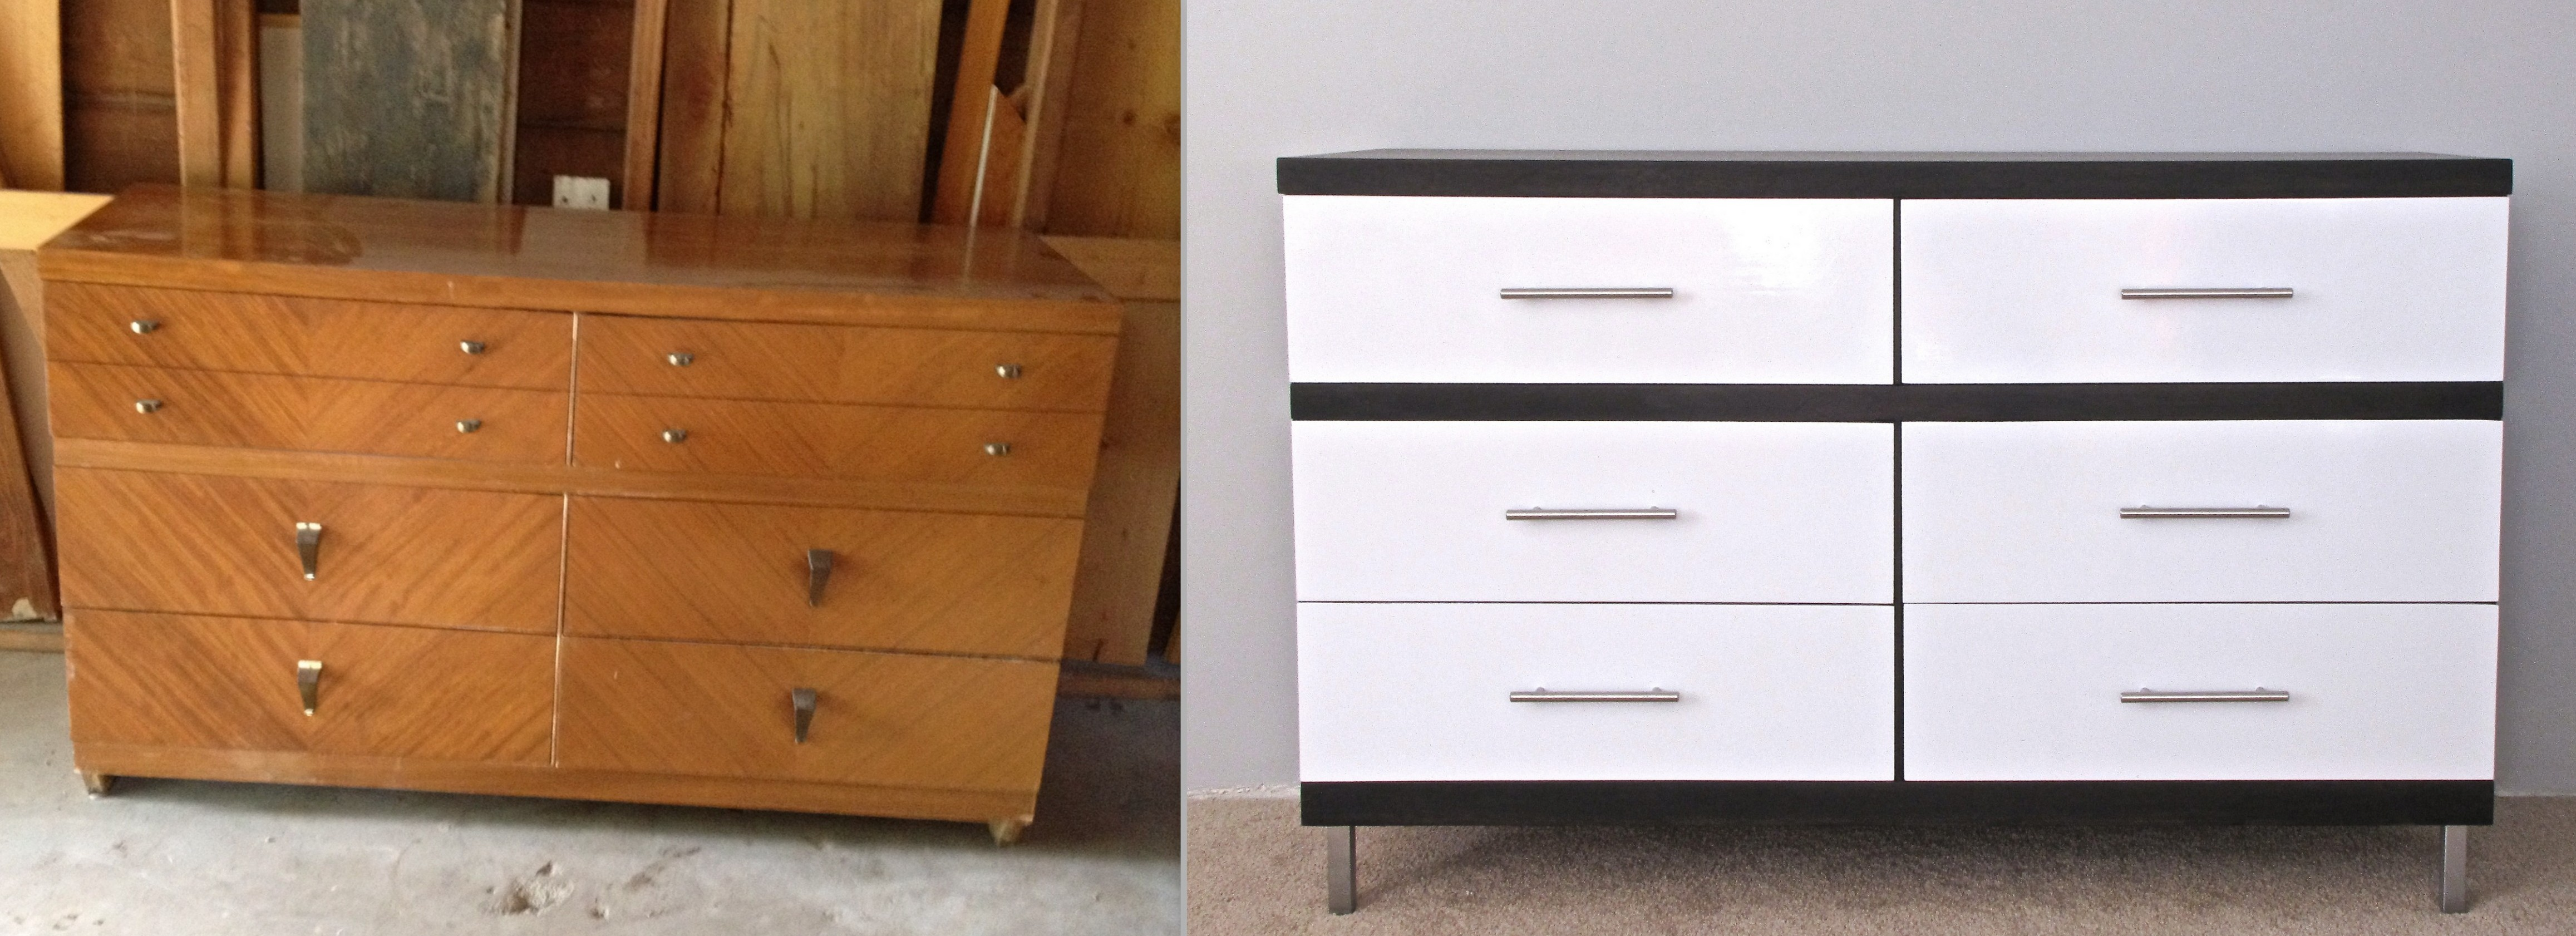 Top Before and After: Modern White Lacquer and Dark Walnut Dresser TV44